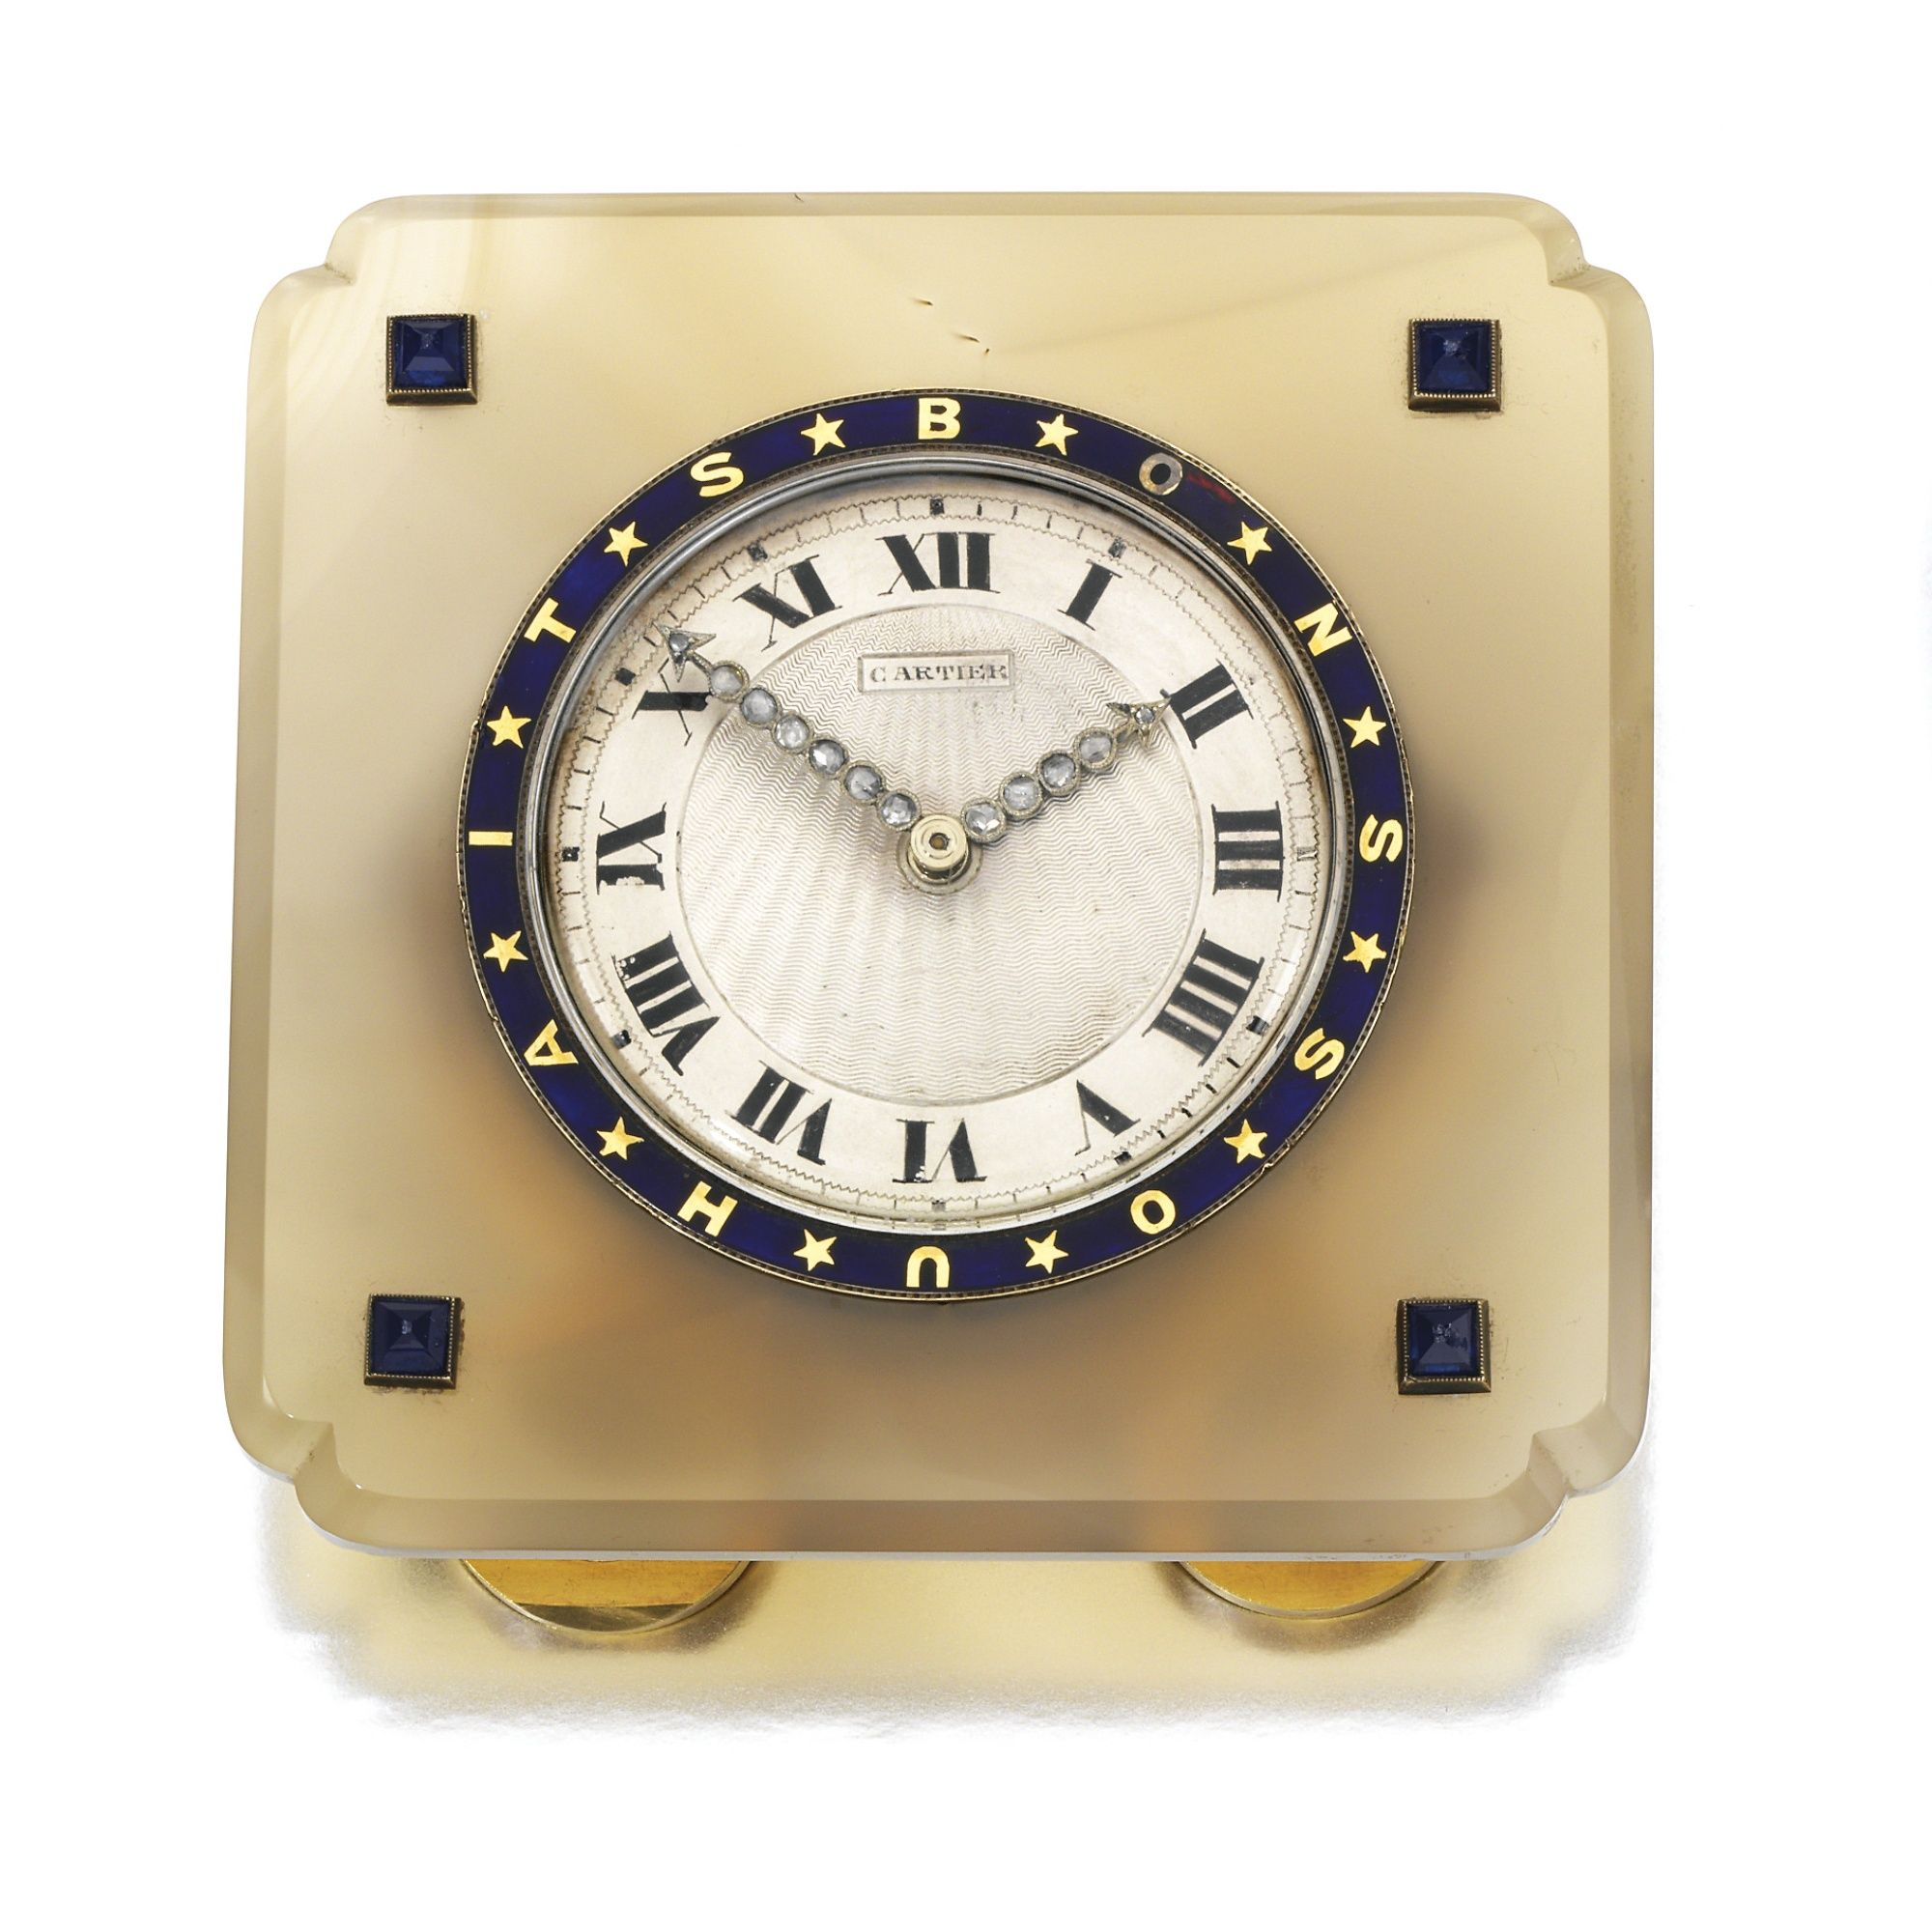 Agate and diamond desk clock cartier 1920s clocks pinterest agate and diamond desk clock cartier sothebys the circular dial applied with roman numerals the hands set with rose amipublicfo Images